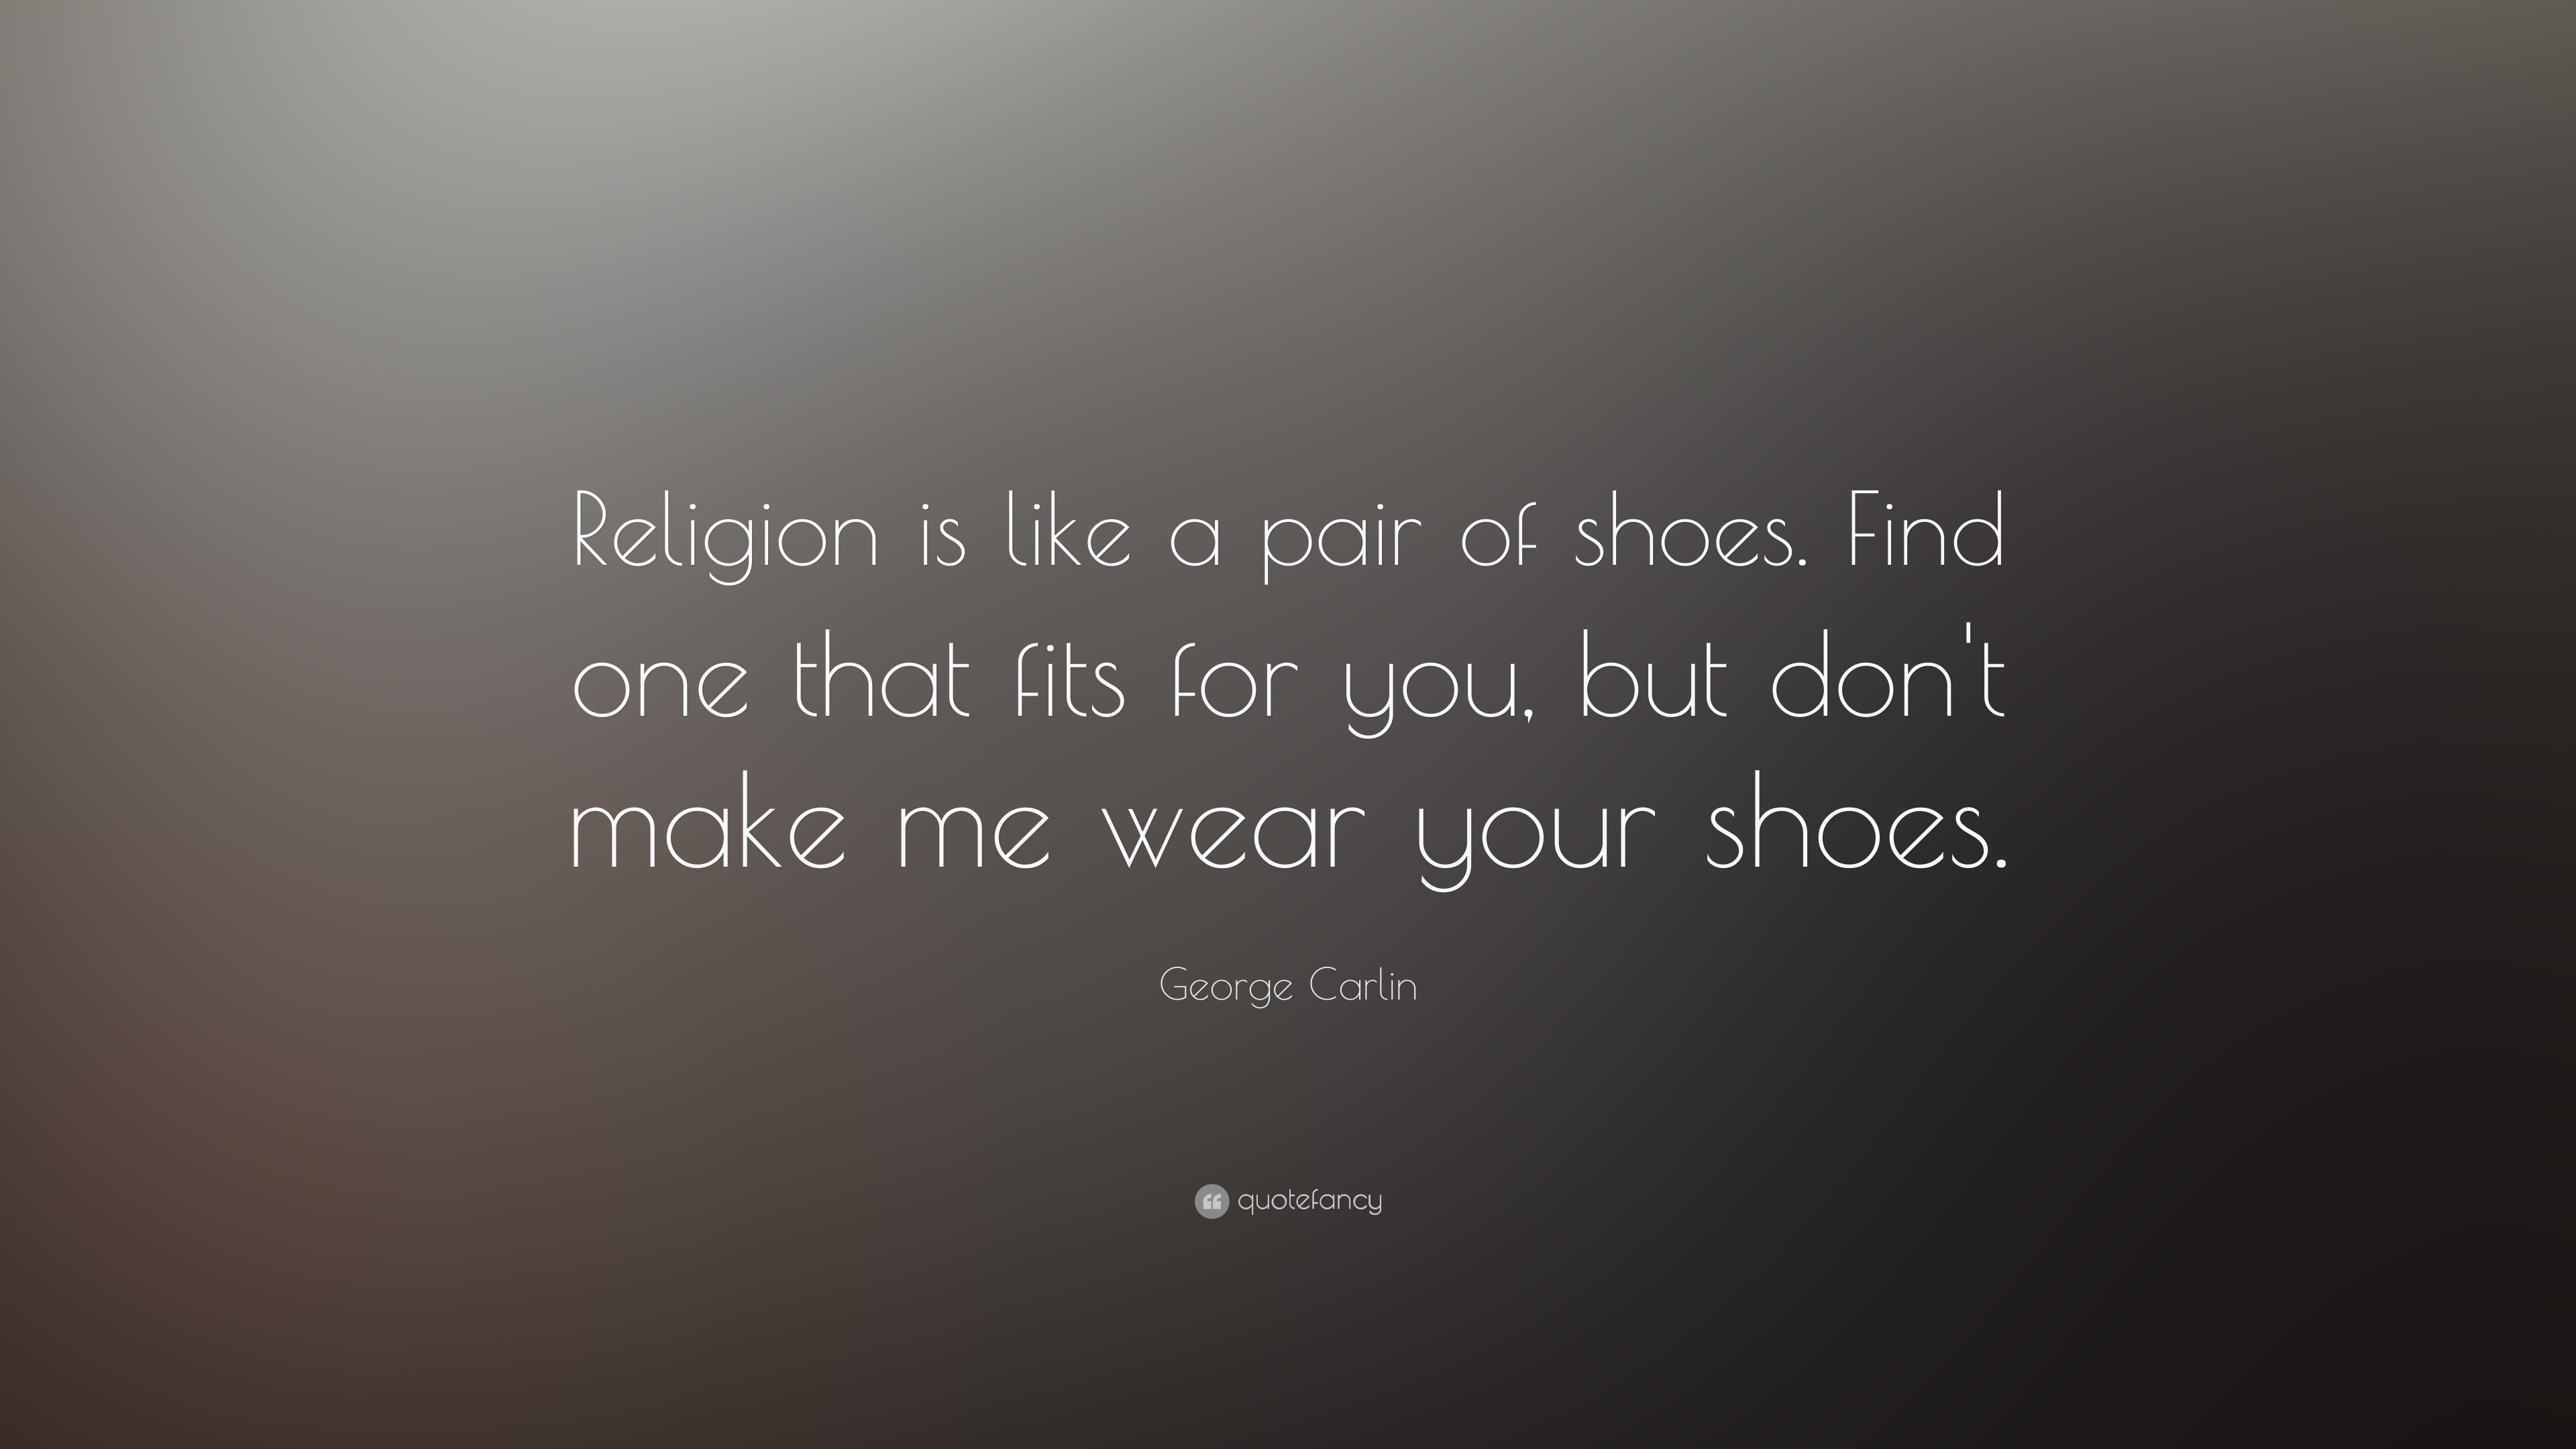 Motivational Quotes To Study Wallpaper George Carlin Quote Religion Is Like A Pair Of Shoes